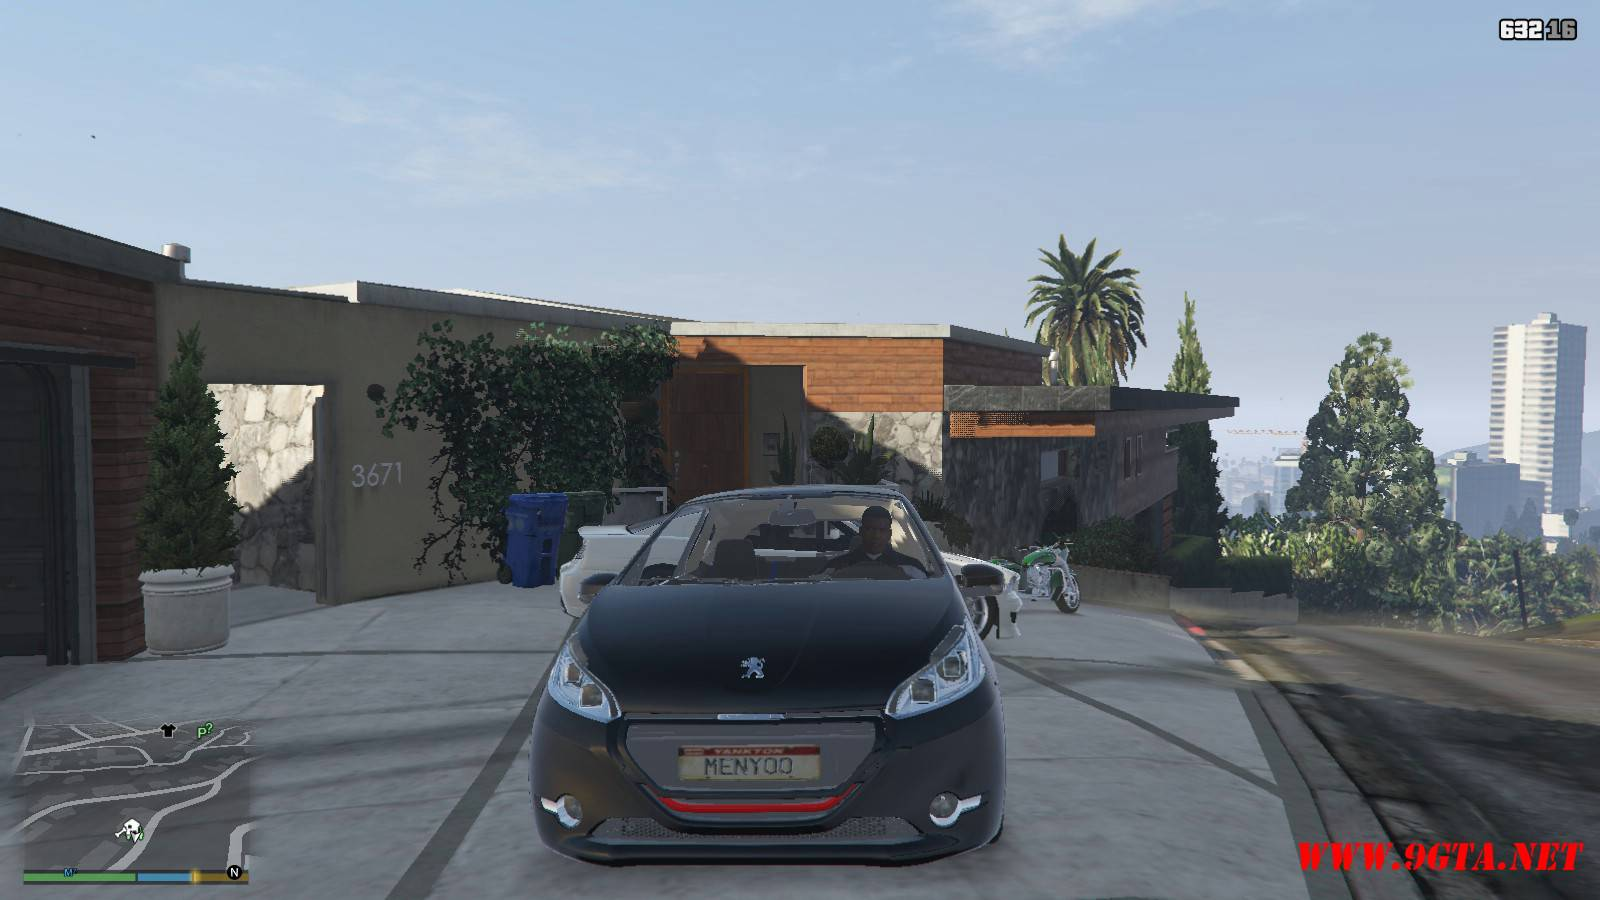 Peugeot 208 Mod For GTA5 (10)